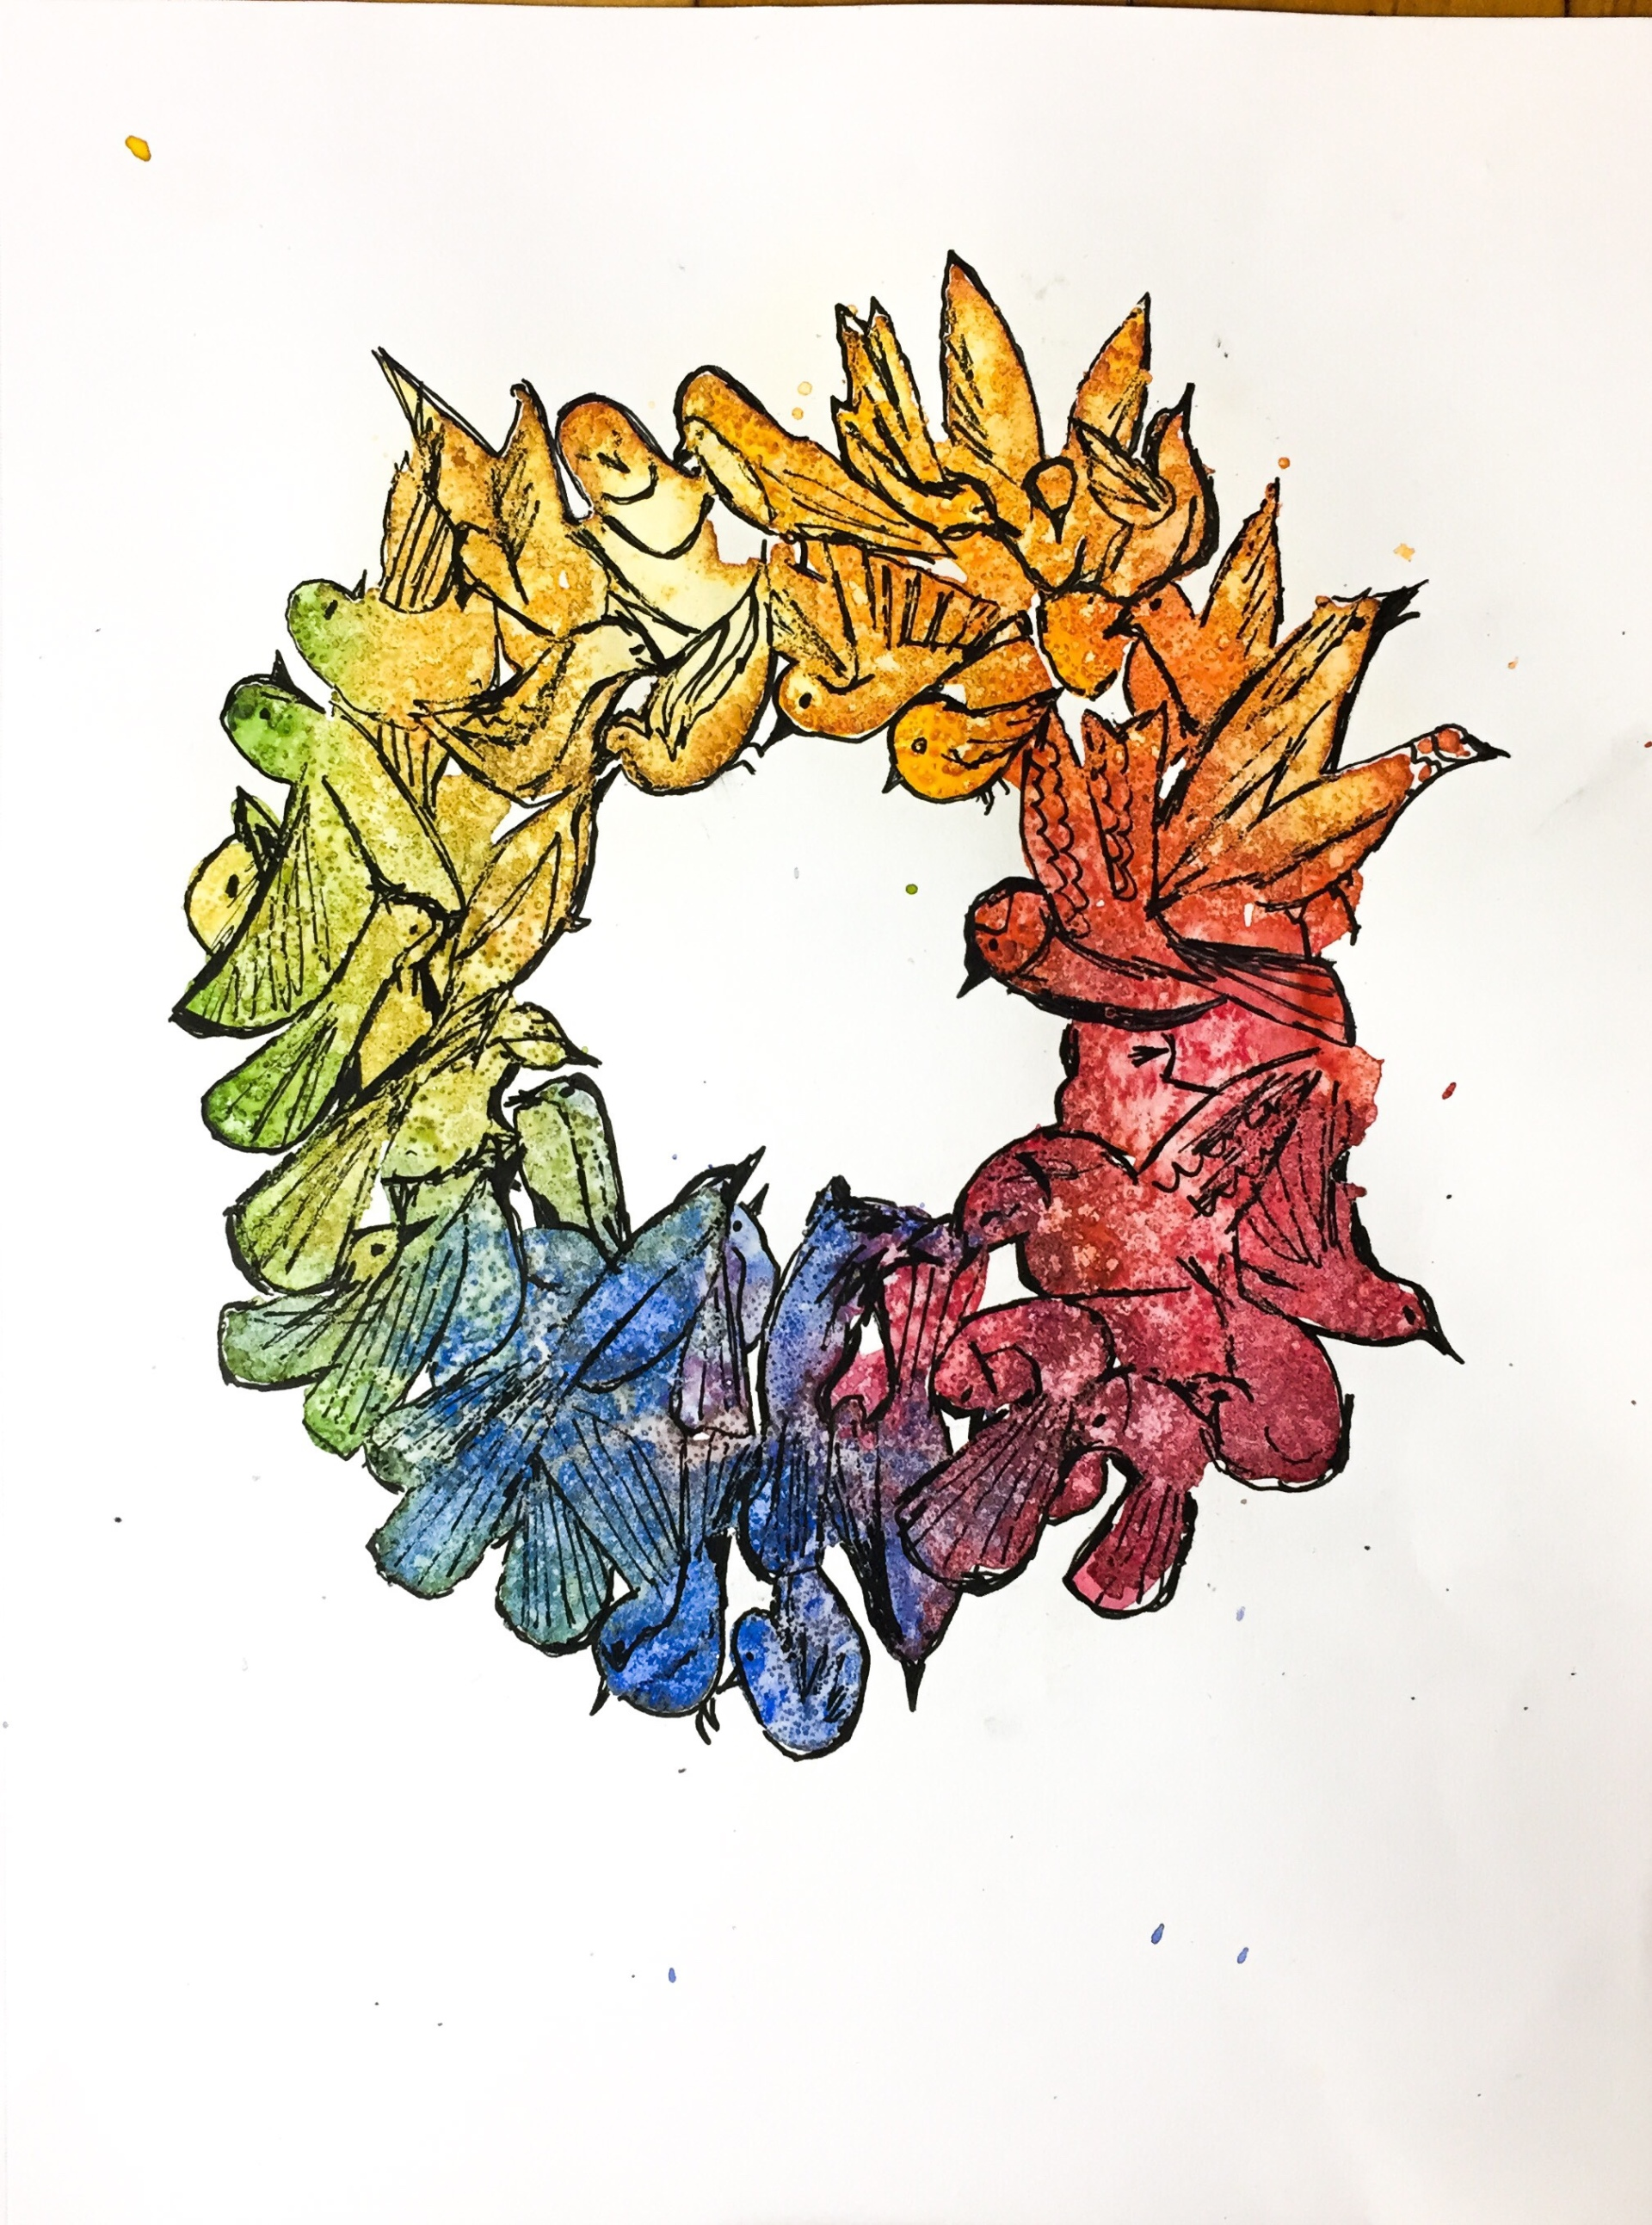 Watercolor time lapse painting. This started with blobs of paint and ended with a wreath of birds.